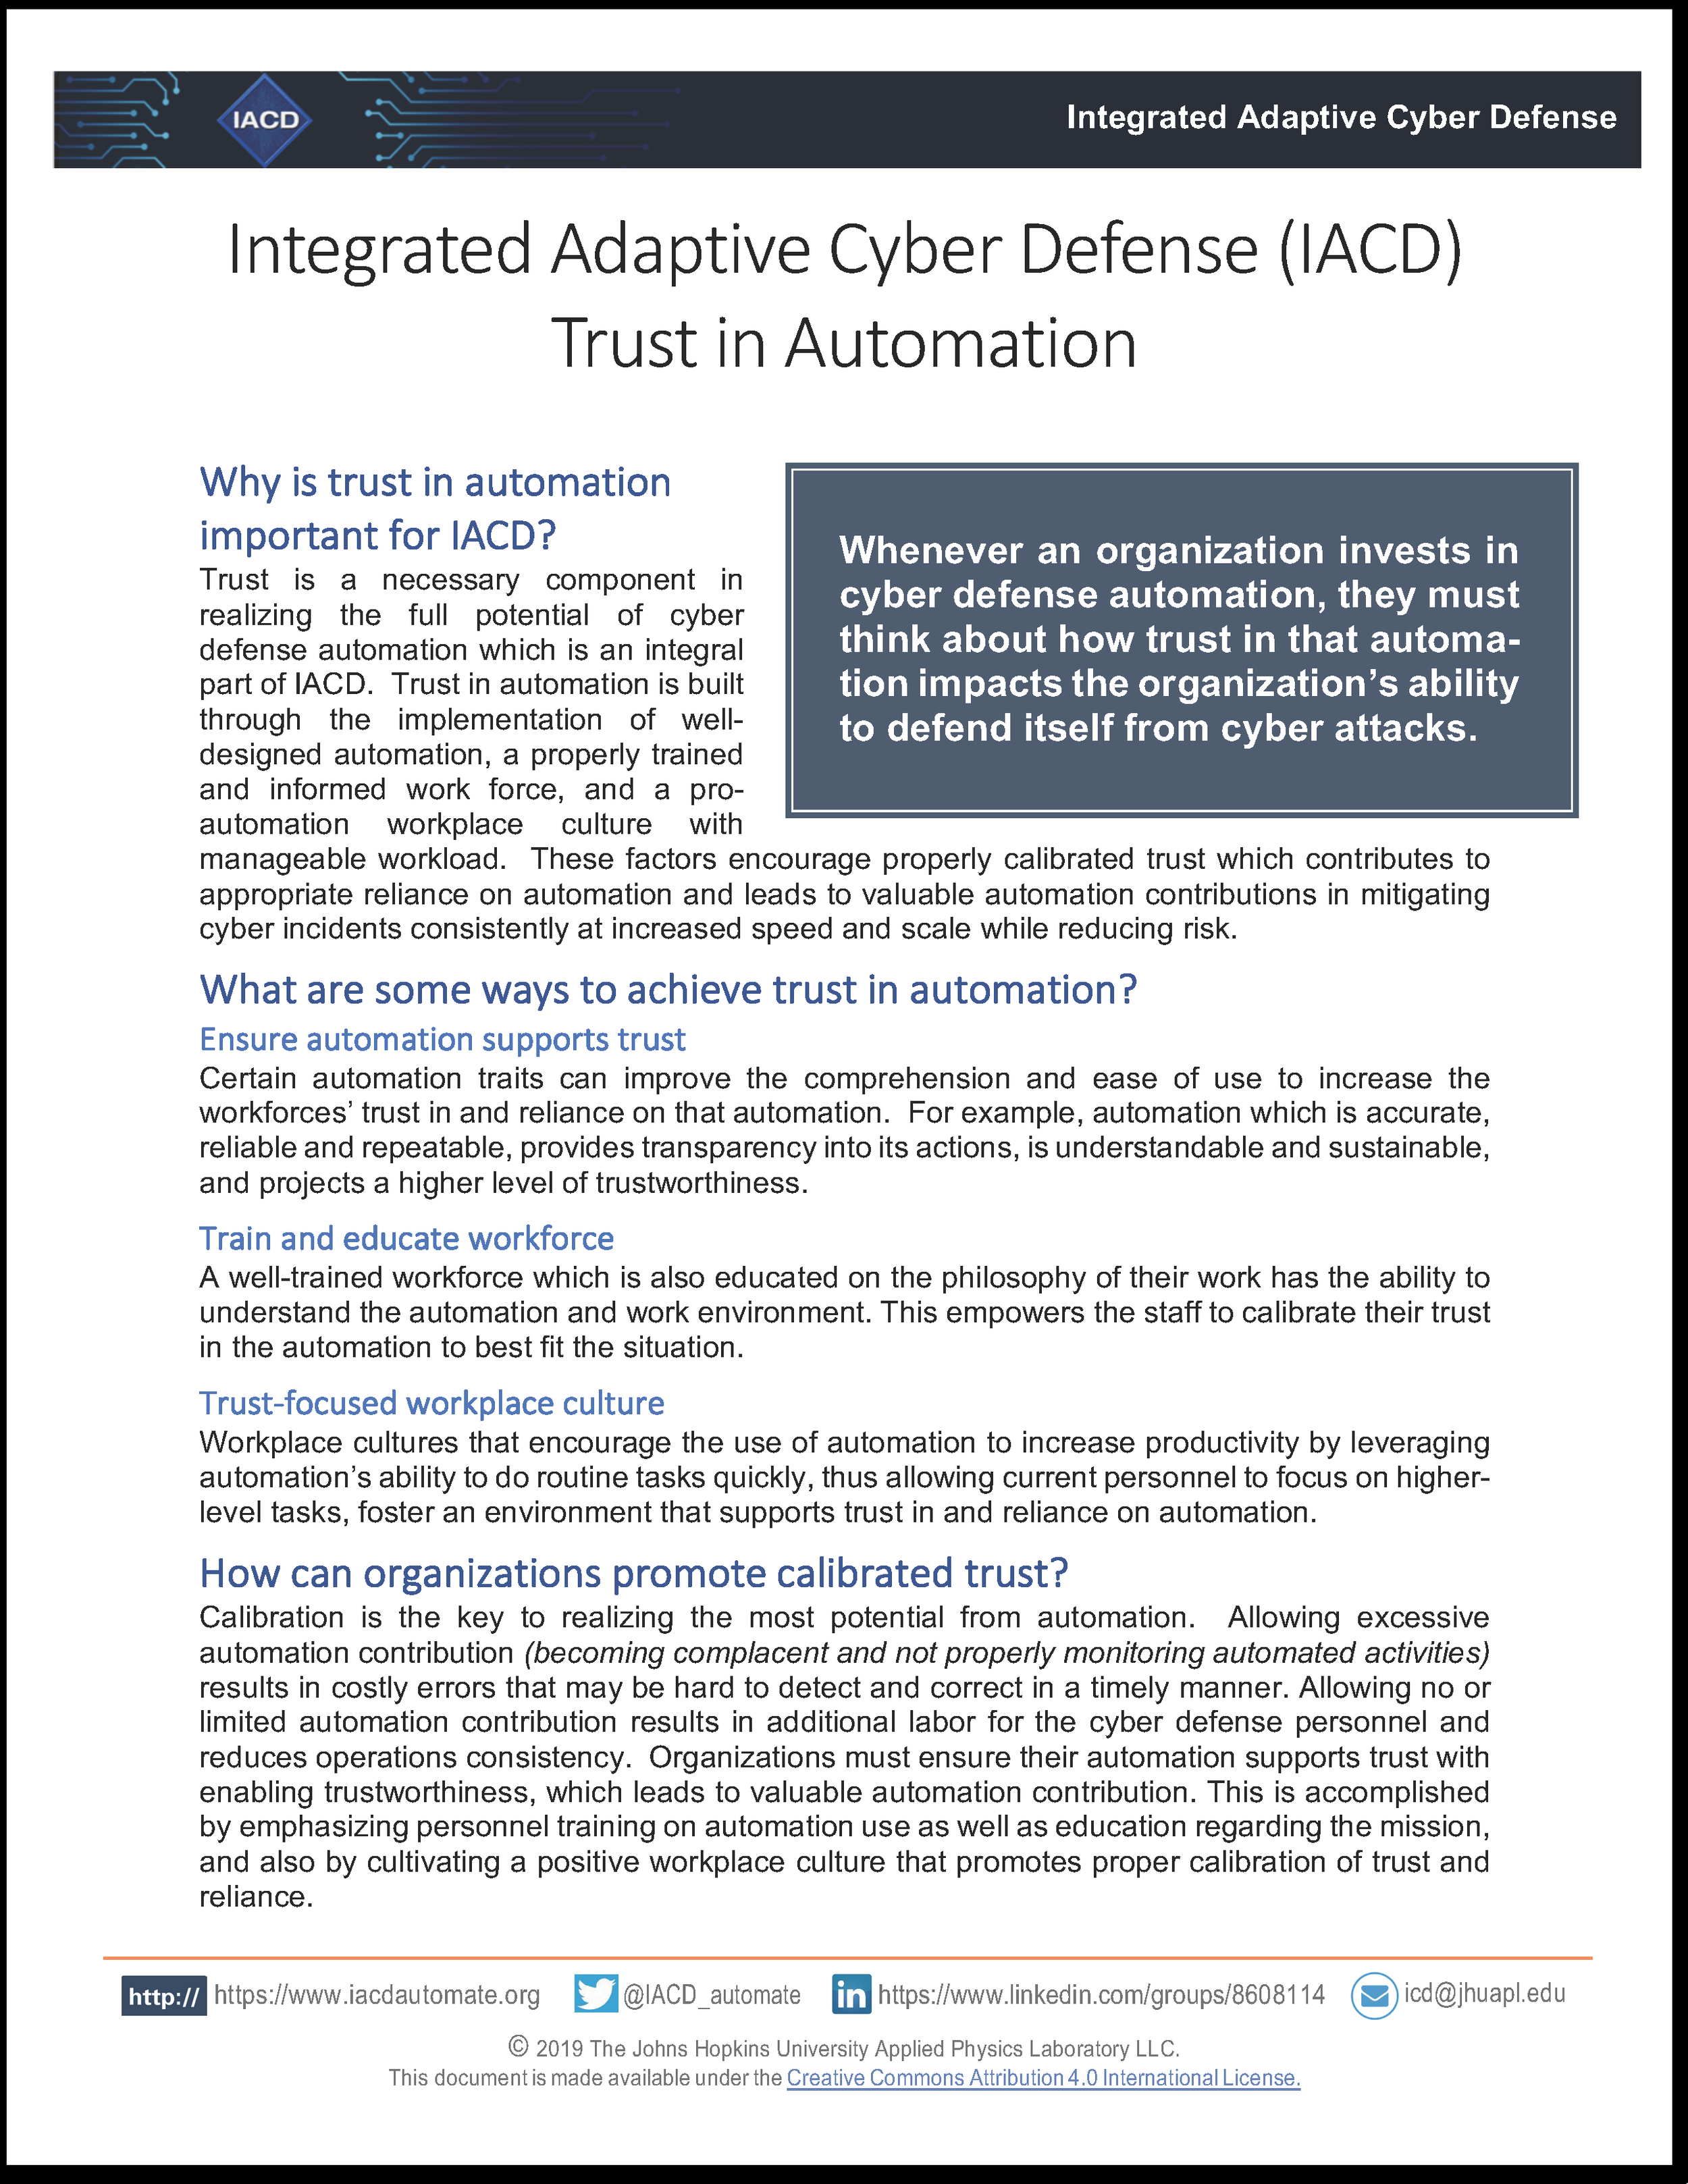 IACD Trust in Automation Whitepaper